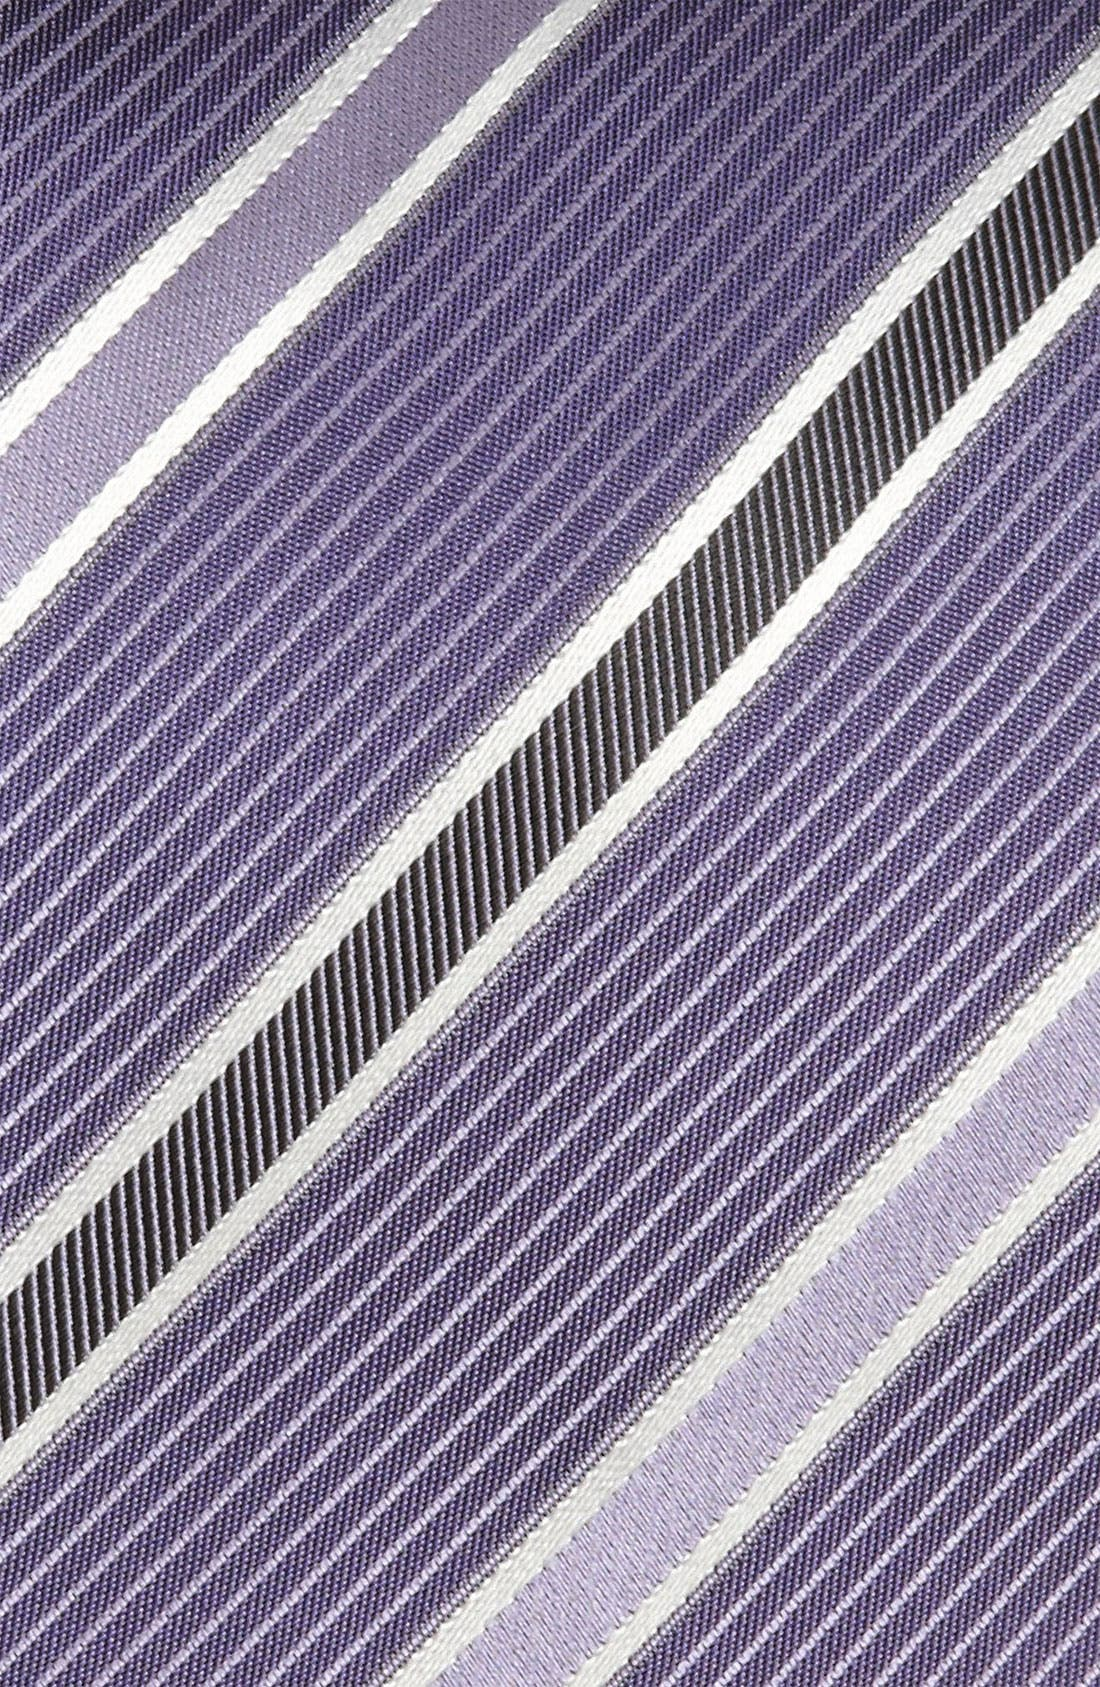 HUGO BOSS Woven Silk Tie,                             Alternate thumbnail 6, color,